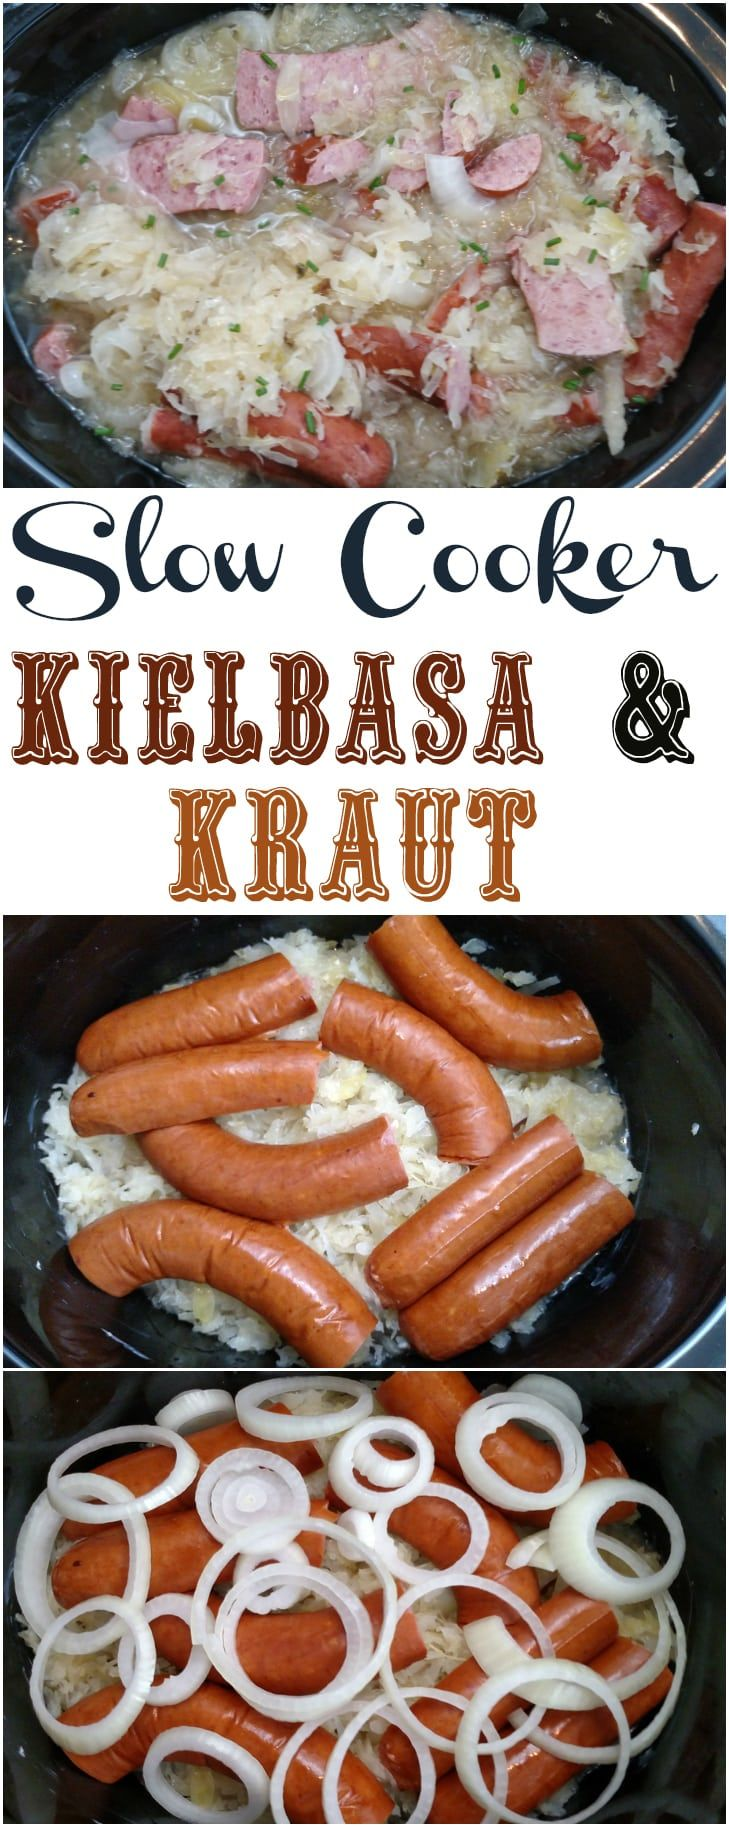 5-Ingredient Crock Pot Kielbasa and Sauerkraut #slowcookercrockpots